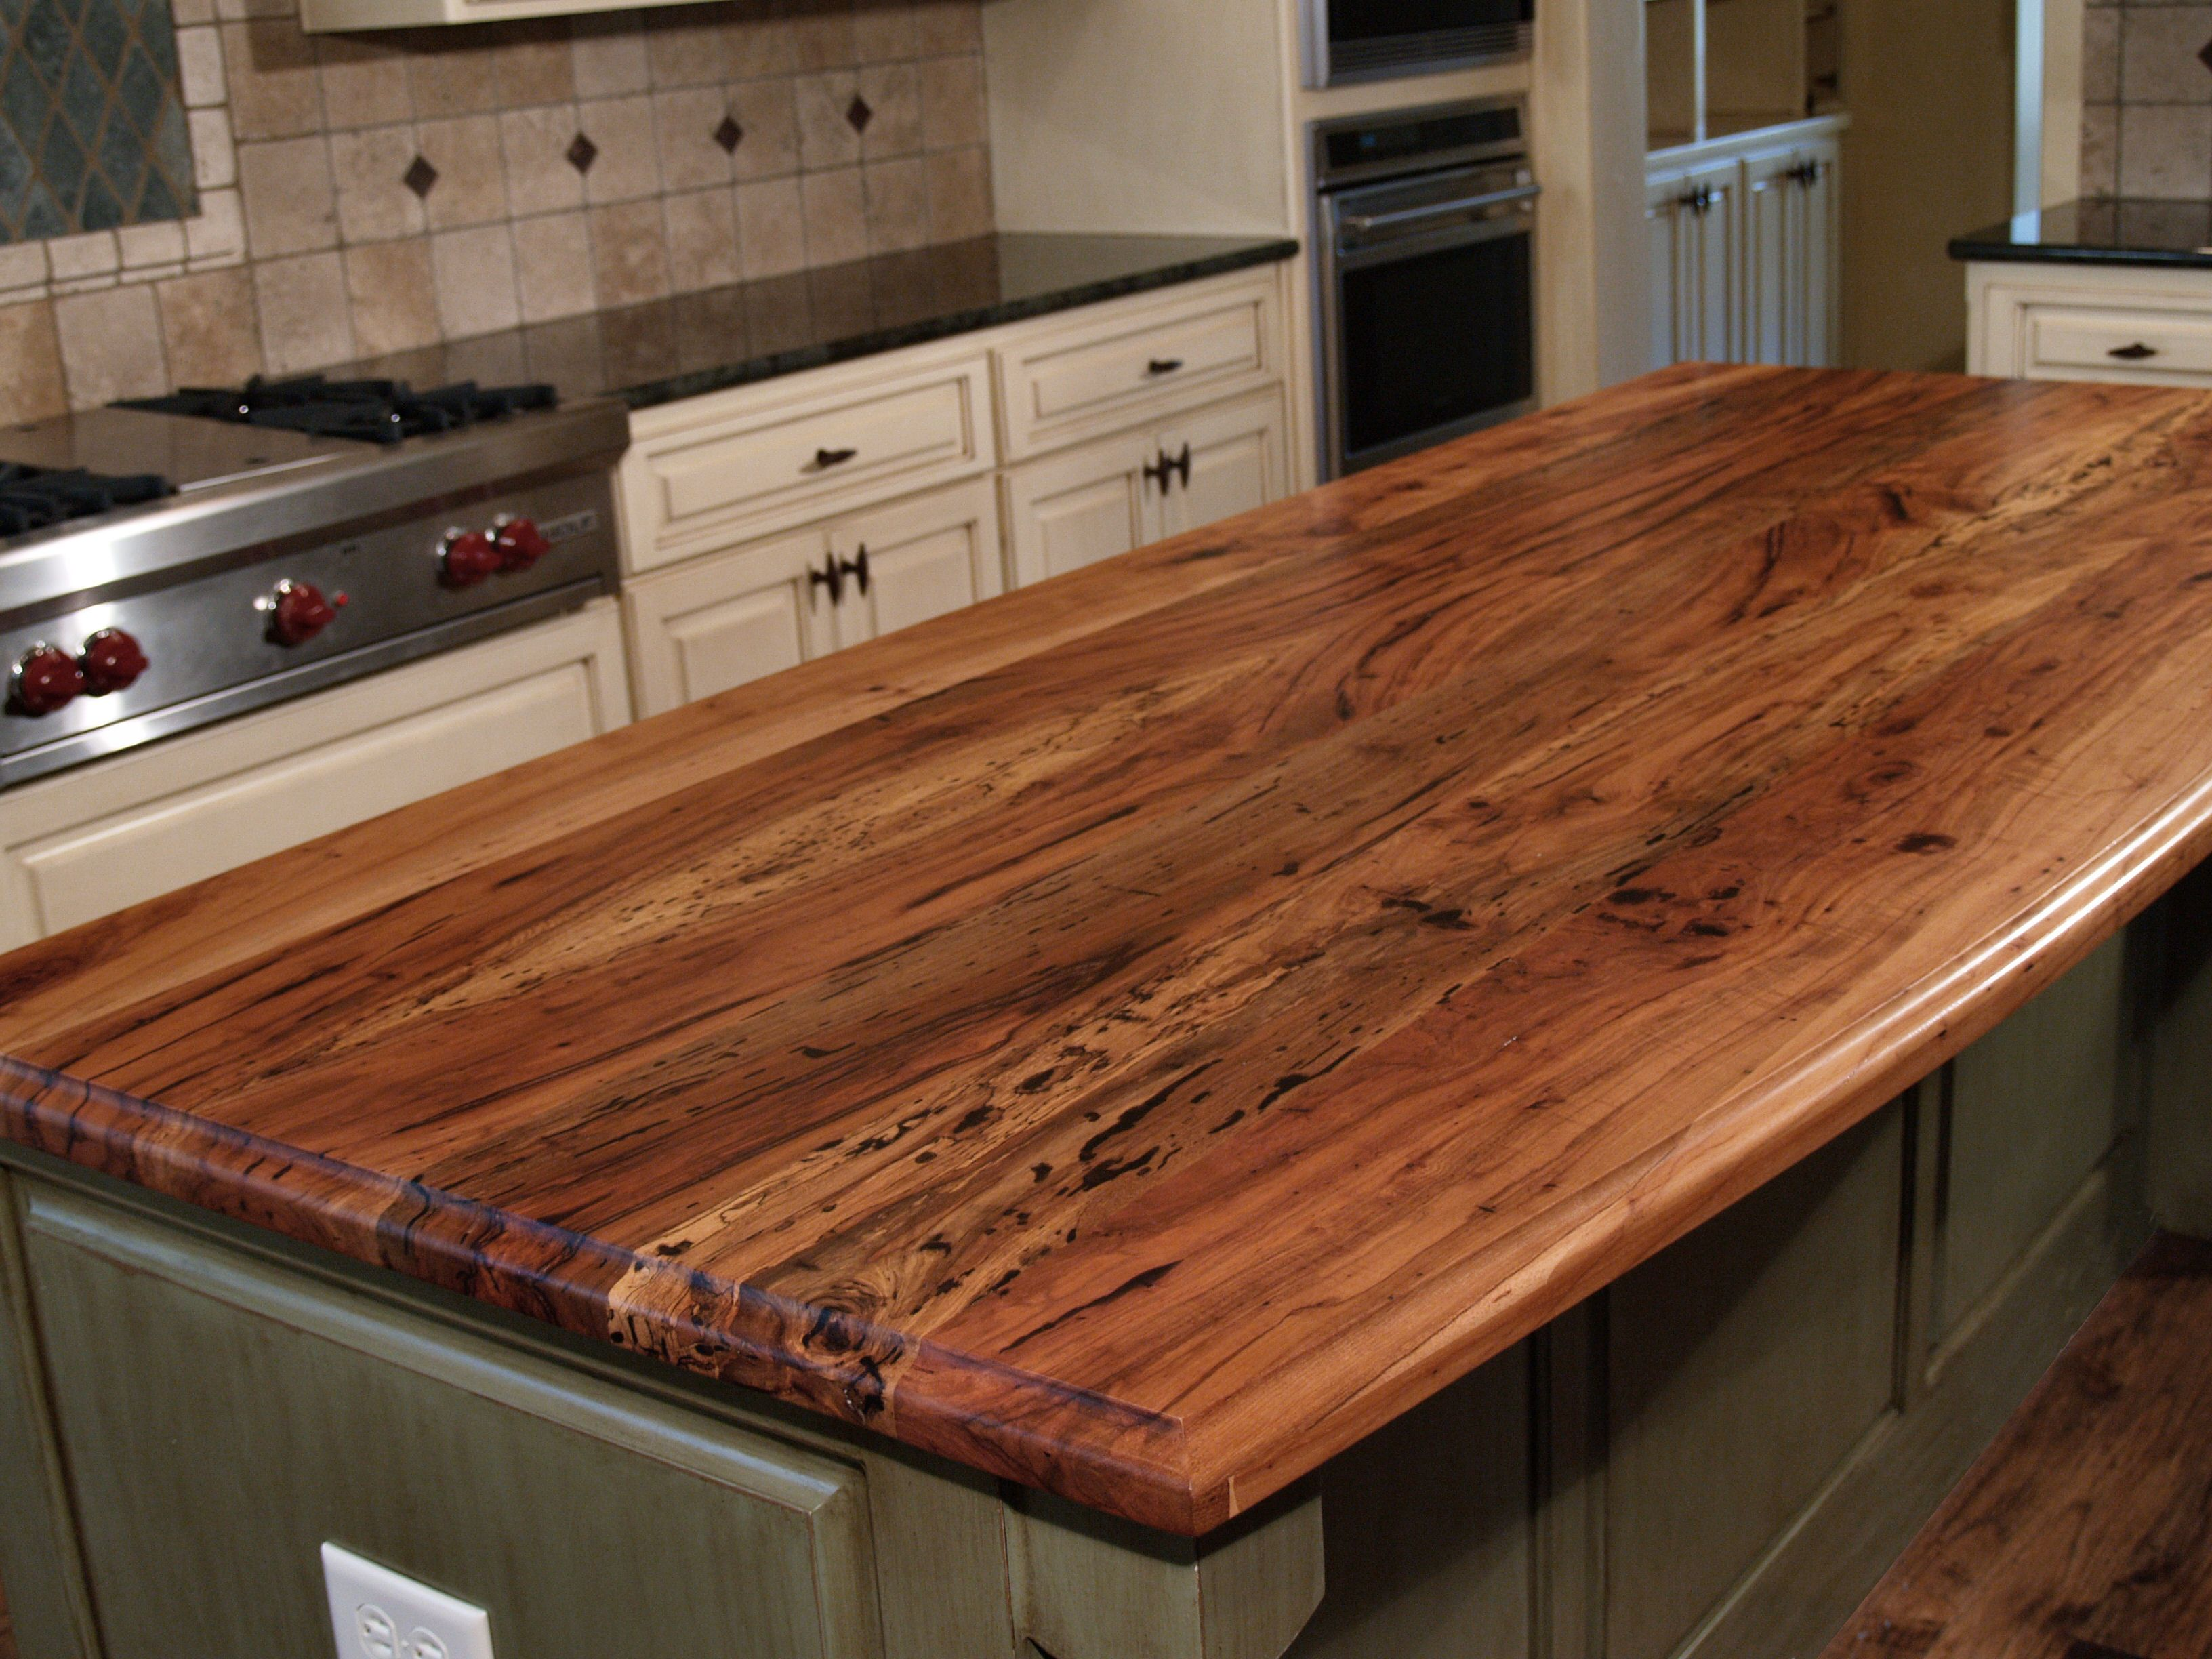 Countertops : Wood Countertops ? Wood Island Tops ? Butcher Block Countertops ...